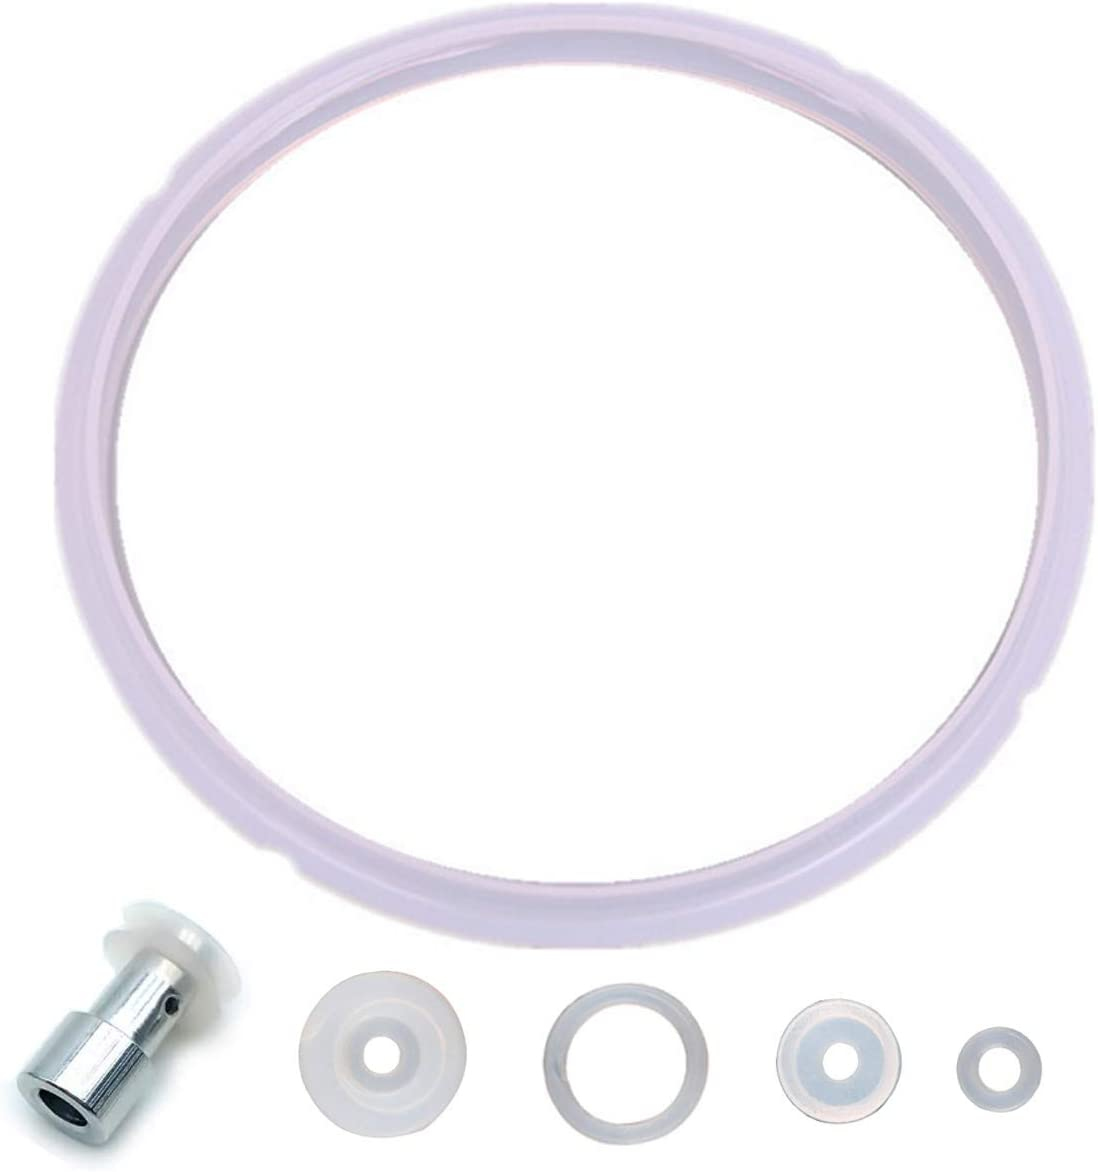 Special Campaign Universal Replacement Silicone Sealing Valve Float Seale Gaskets Recommended